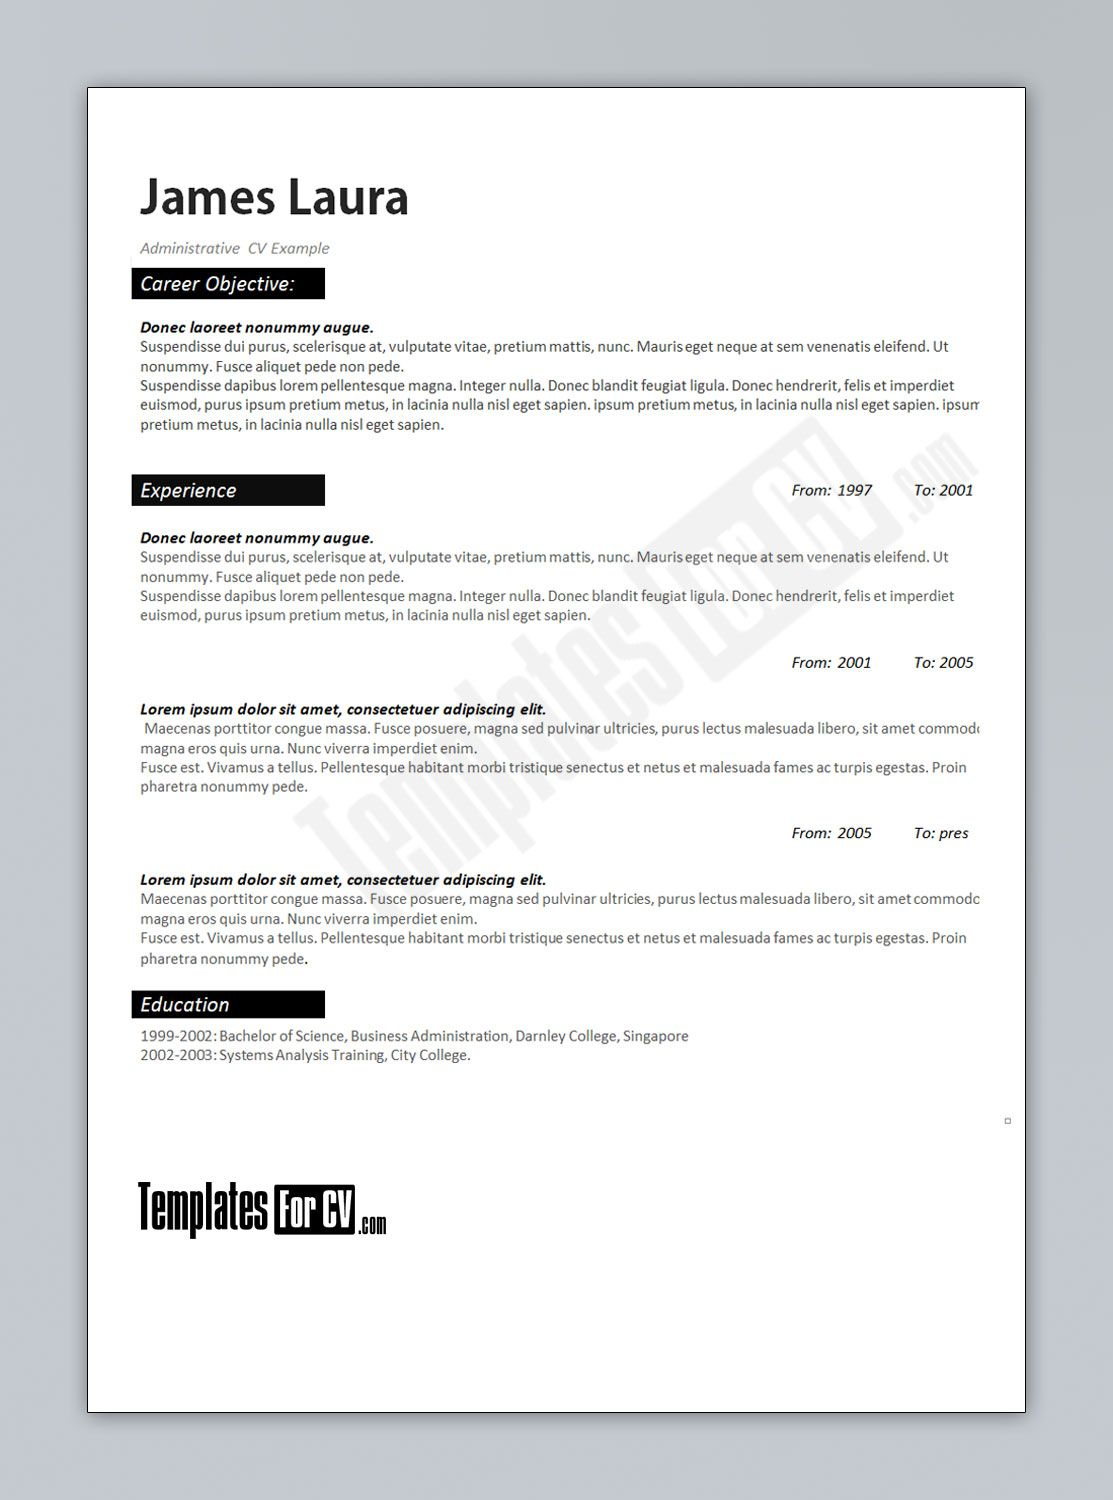 Administrator cv template cv template administrator for How to create a cv template in word